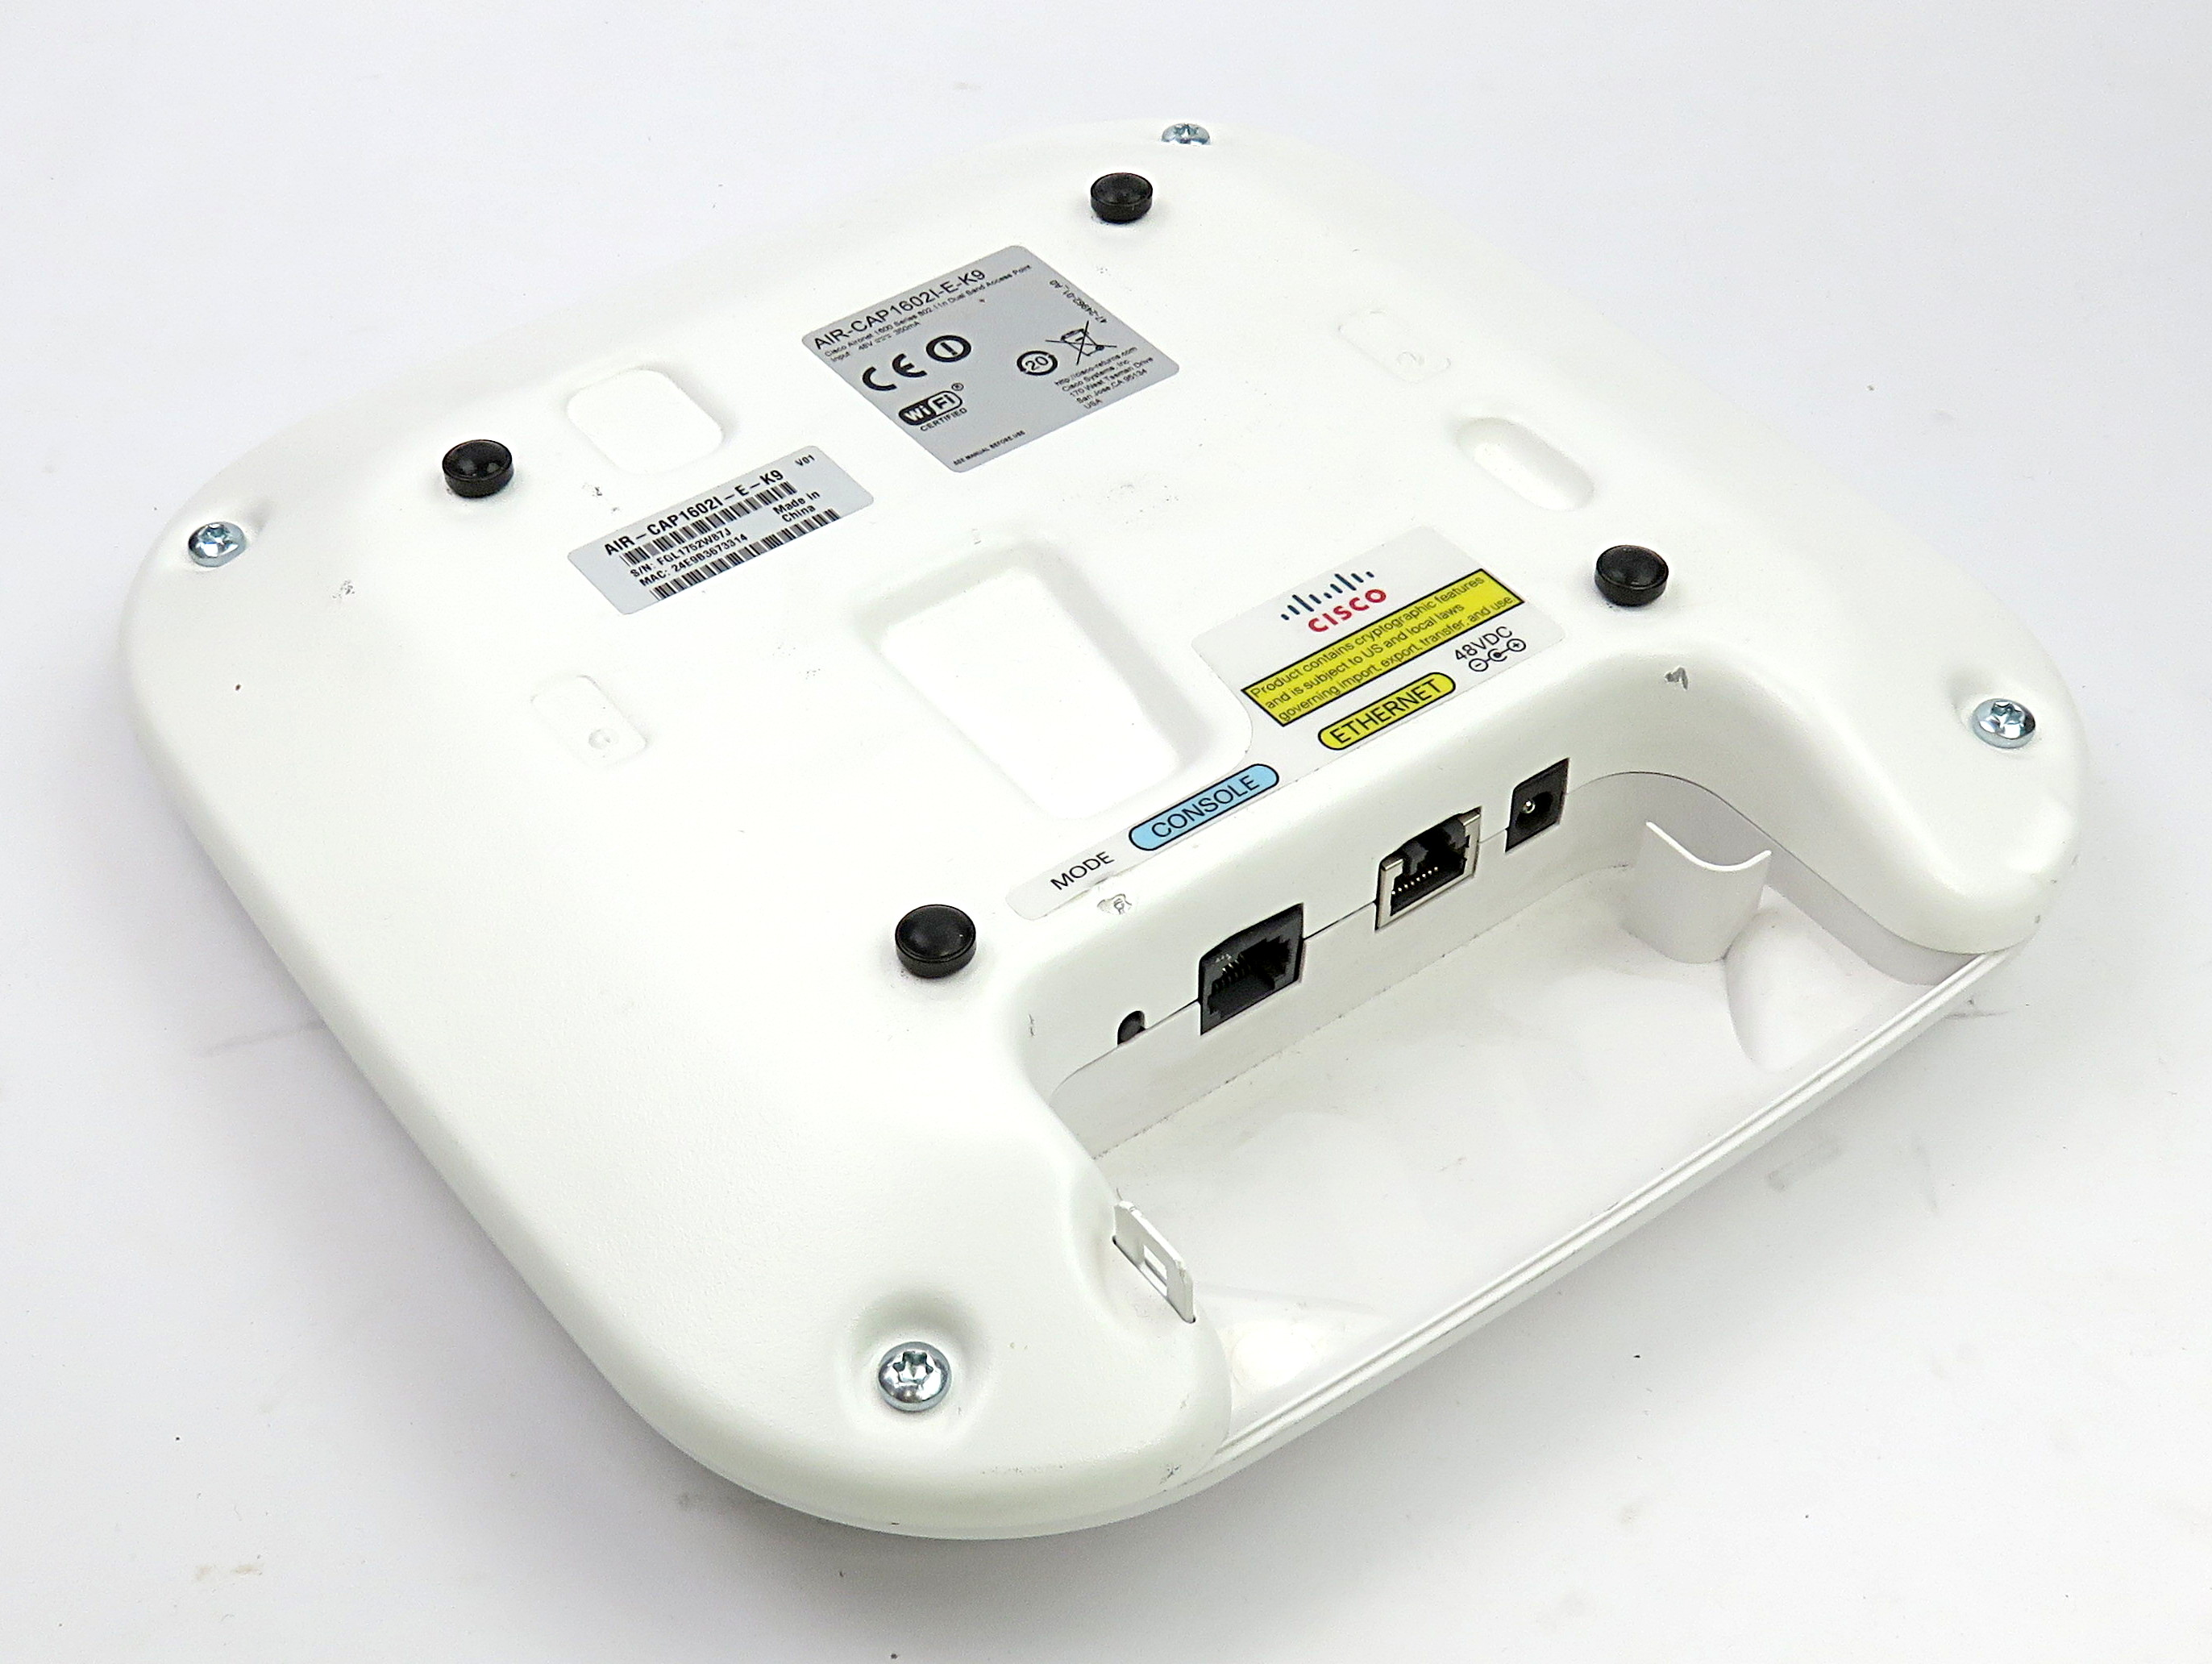 Set of Four Cisco AIR-CAP1602I-E-K9 Dual-band 802.11a/g/n Wireless Access Points